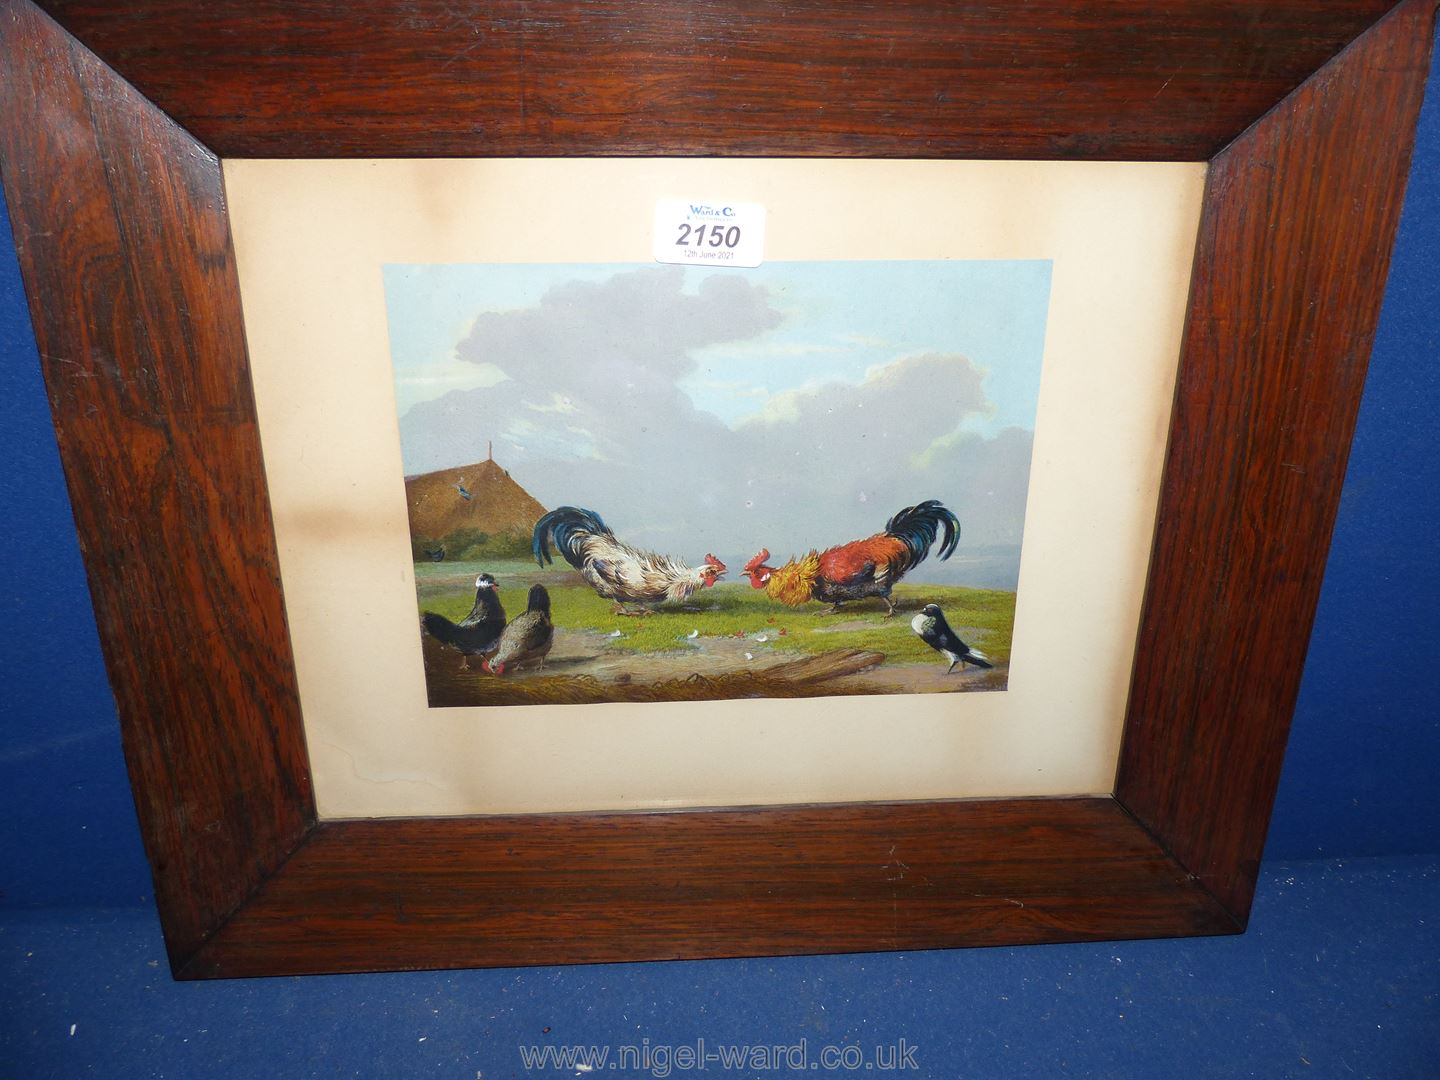 A wooden framed Lithograph depicting Two Cockerels fighting, 18'' x 15''.